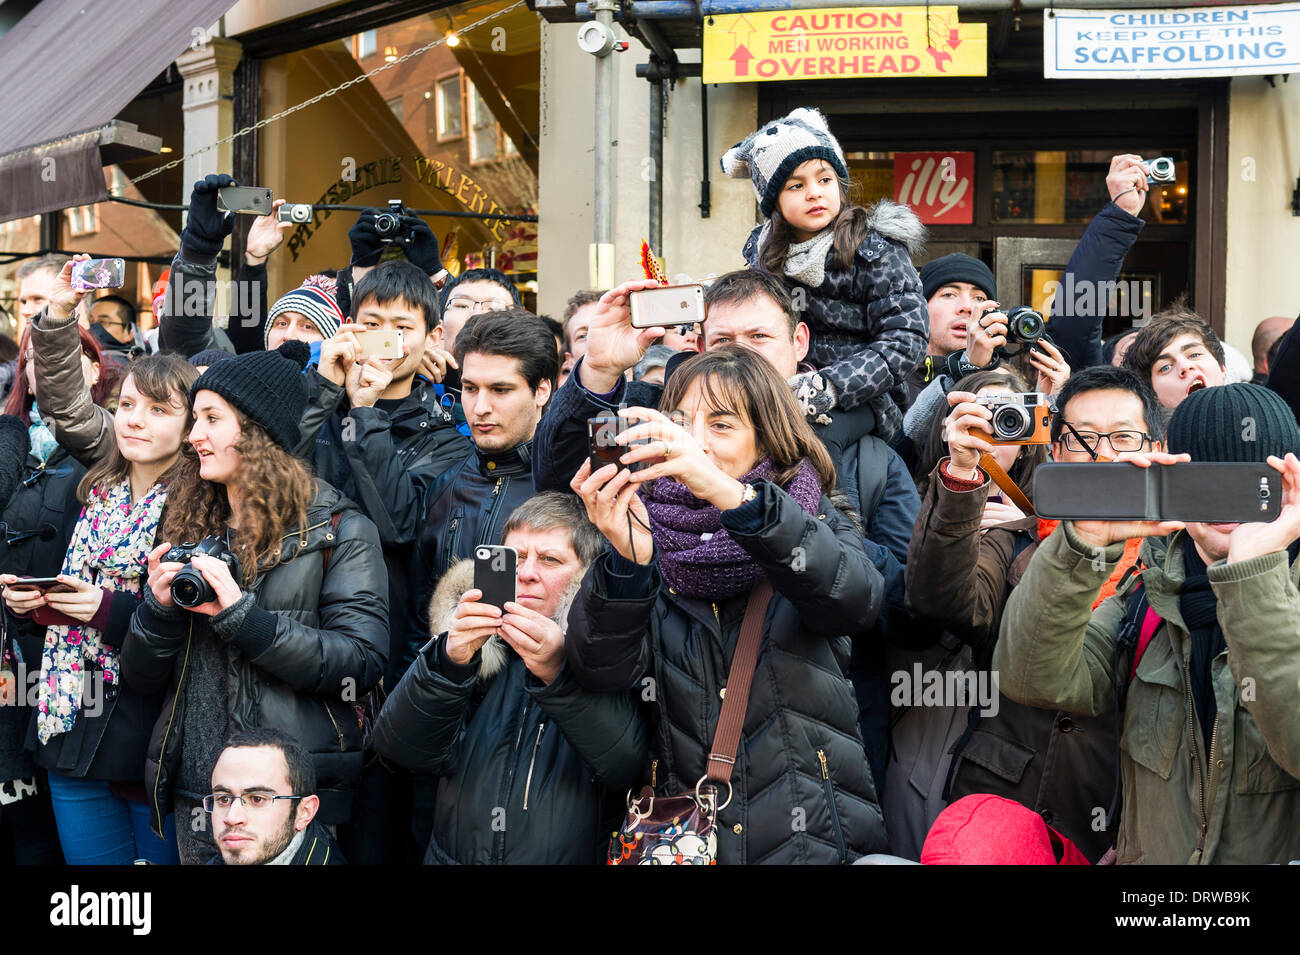 Charing Cross Rd, London, UK. 2nd February 2014. Members of the public photographing the Chinese New Year parade. Credit:  Gordon Scammell/Alamy Live News - Stock Image